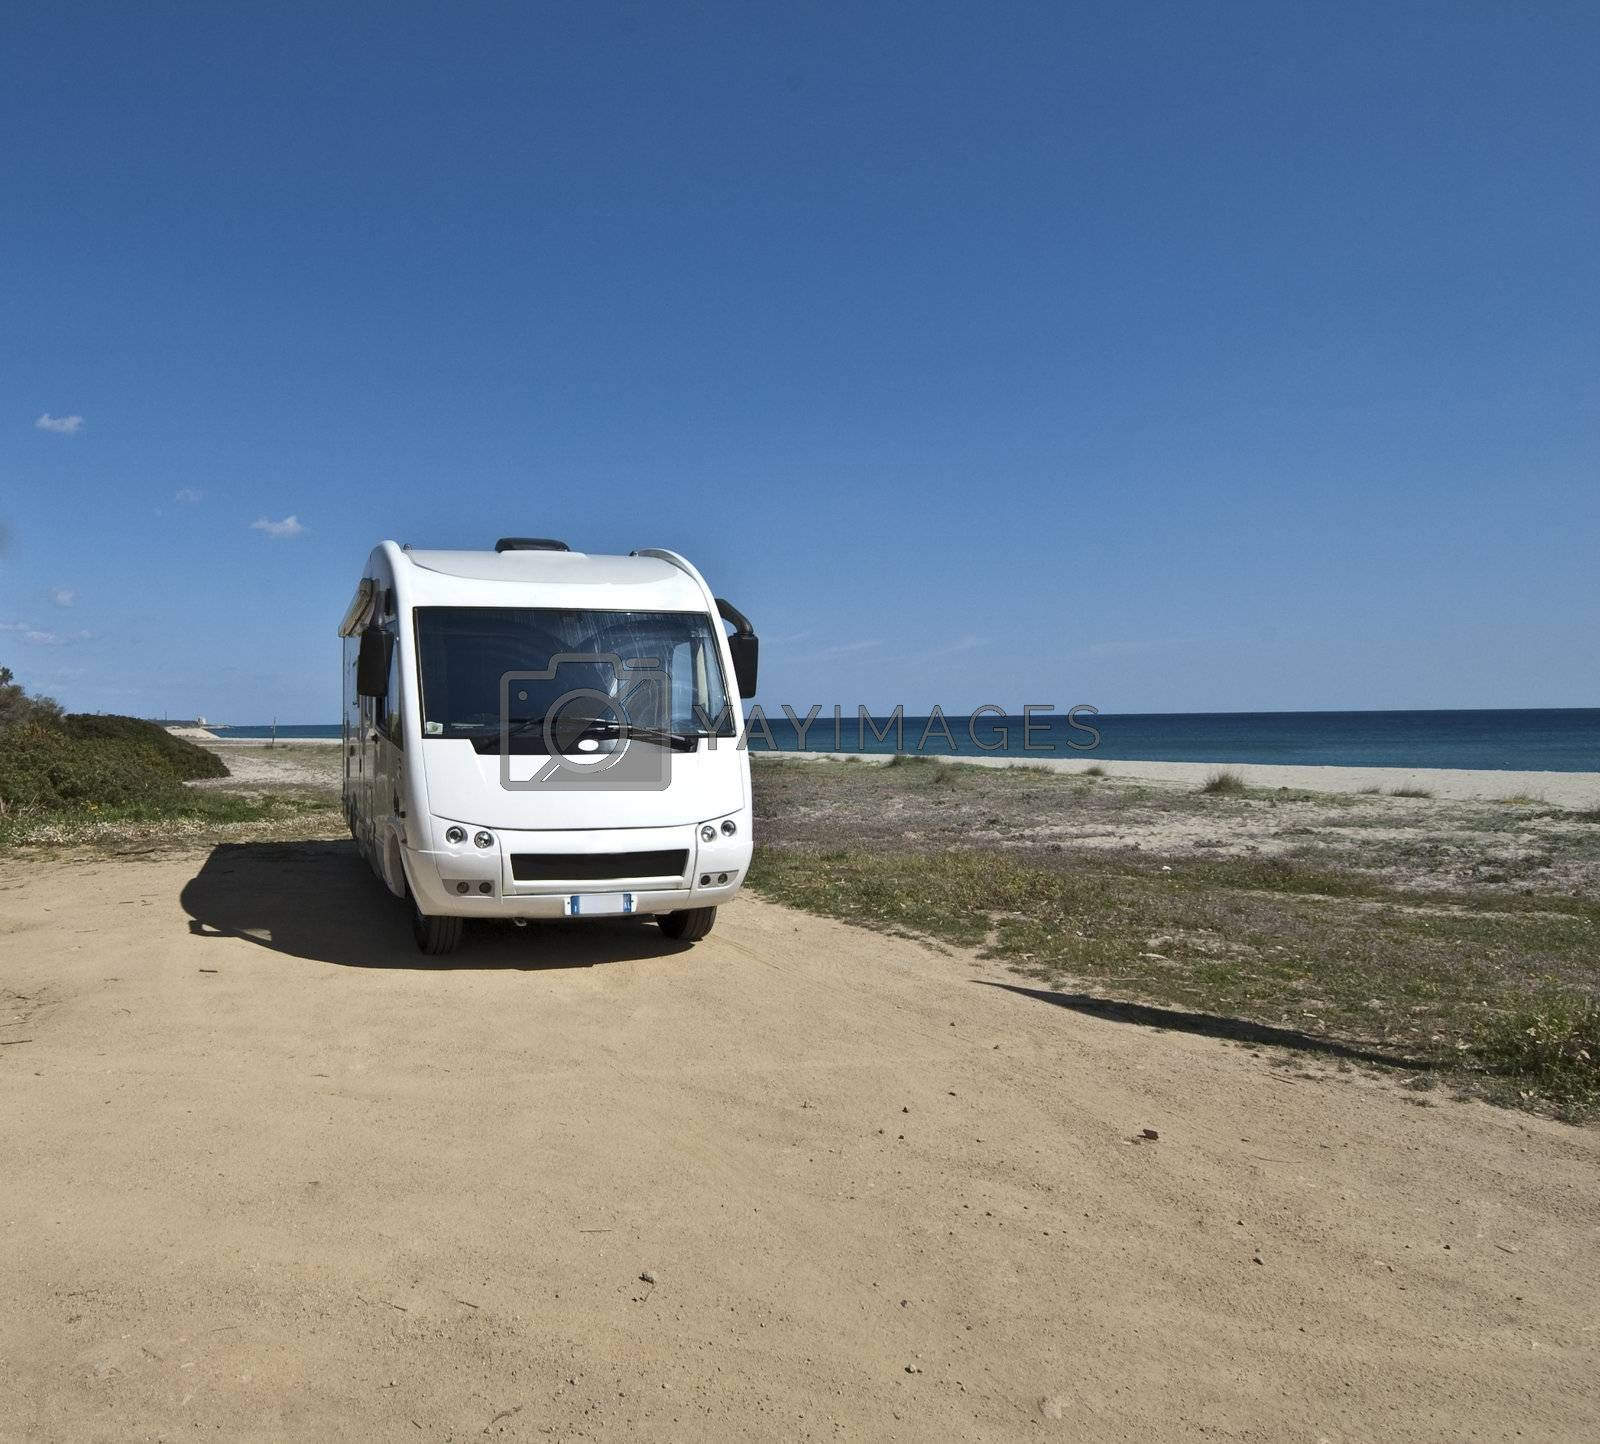 camper parked on a beach in Sardinia